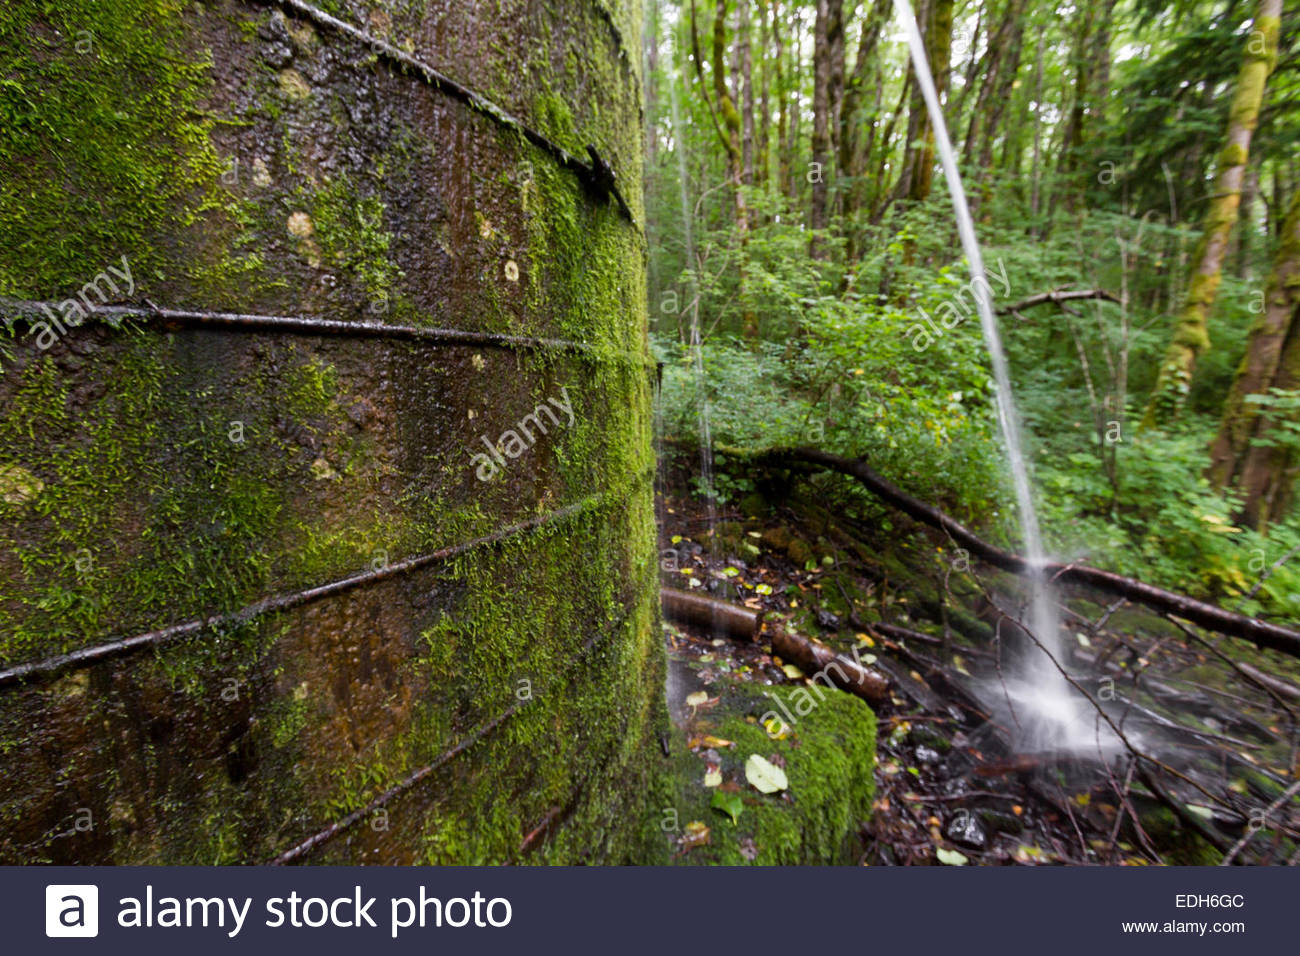 Old watertank in forest with a leak - USA - Oregon - Stock Image